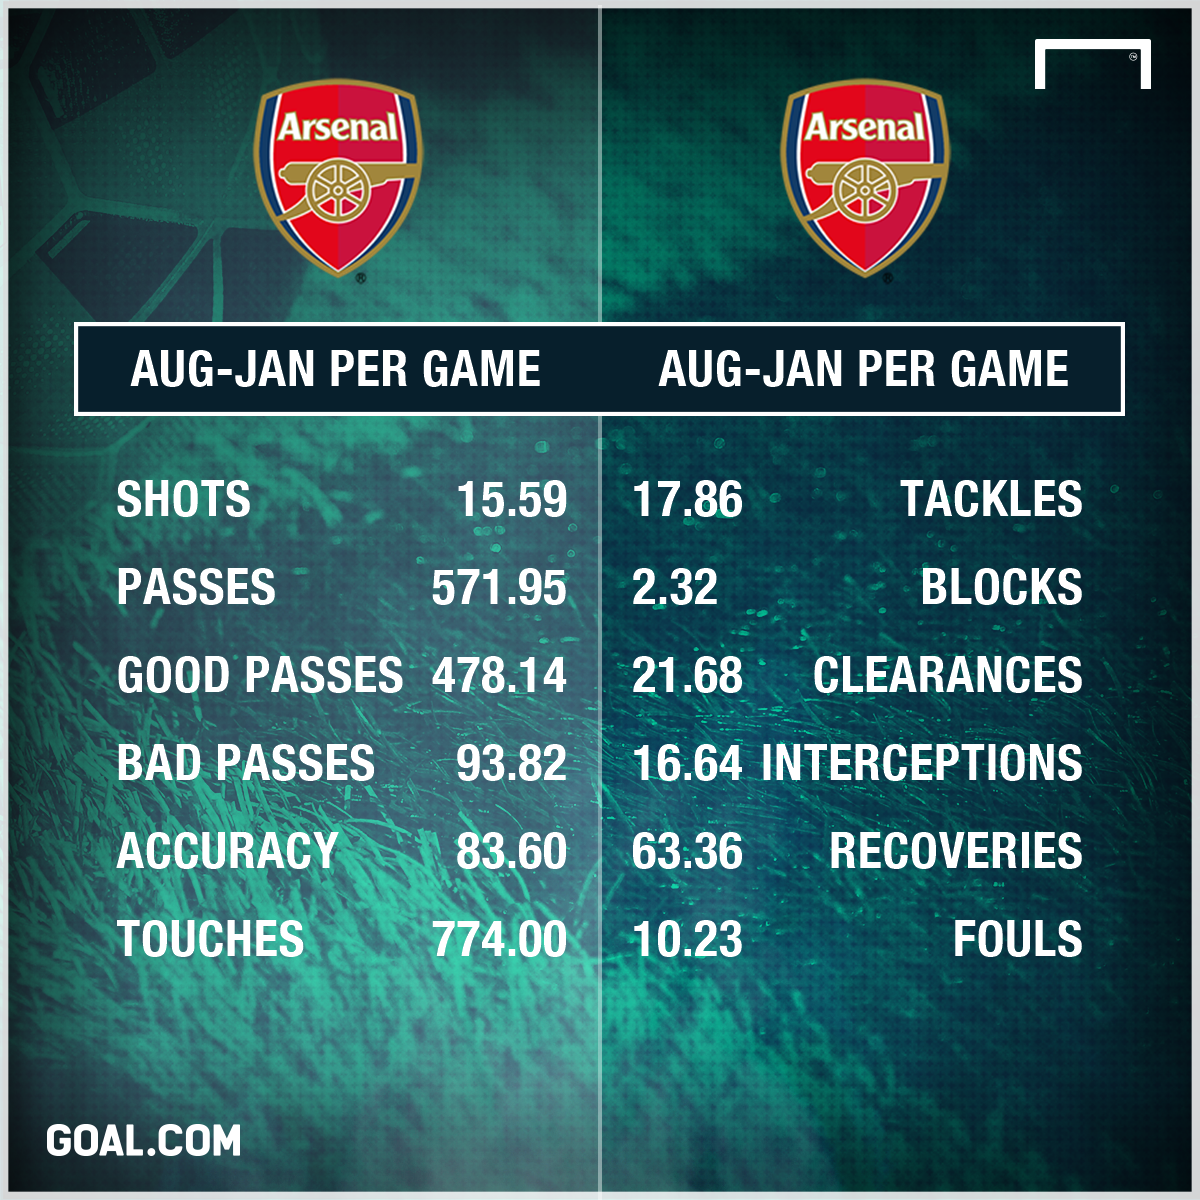 Arsenal per game Aug Jan